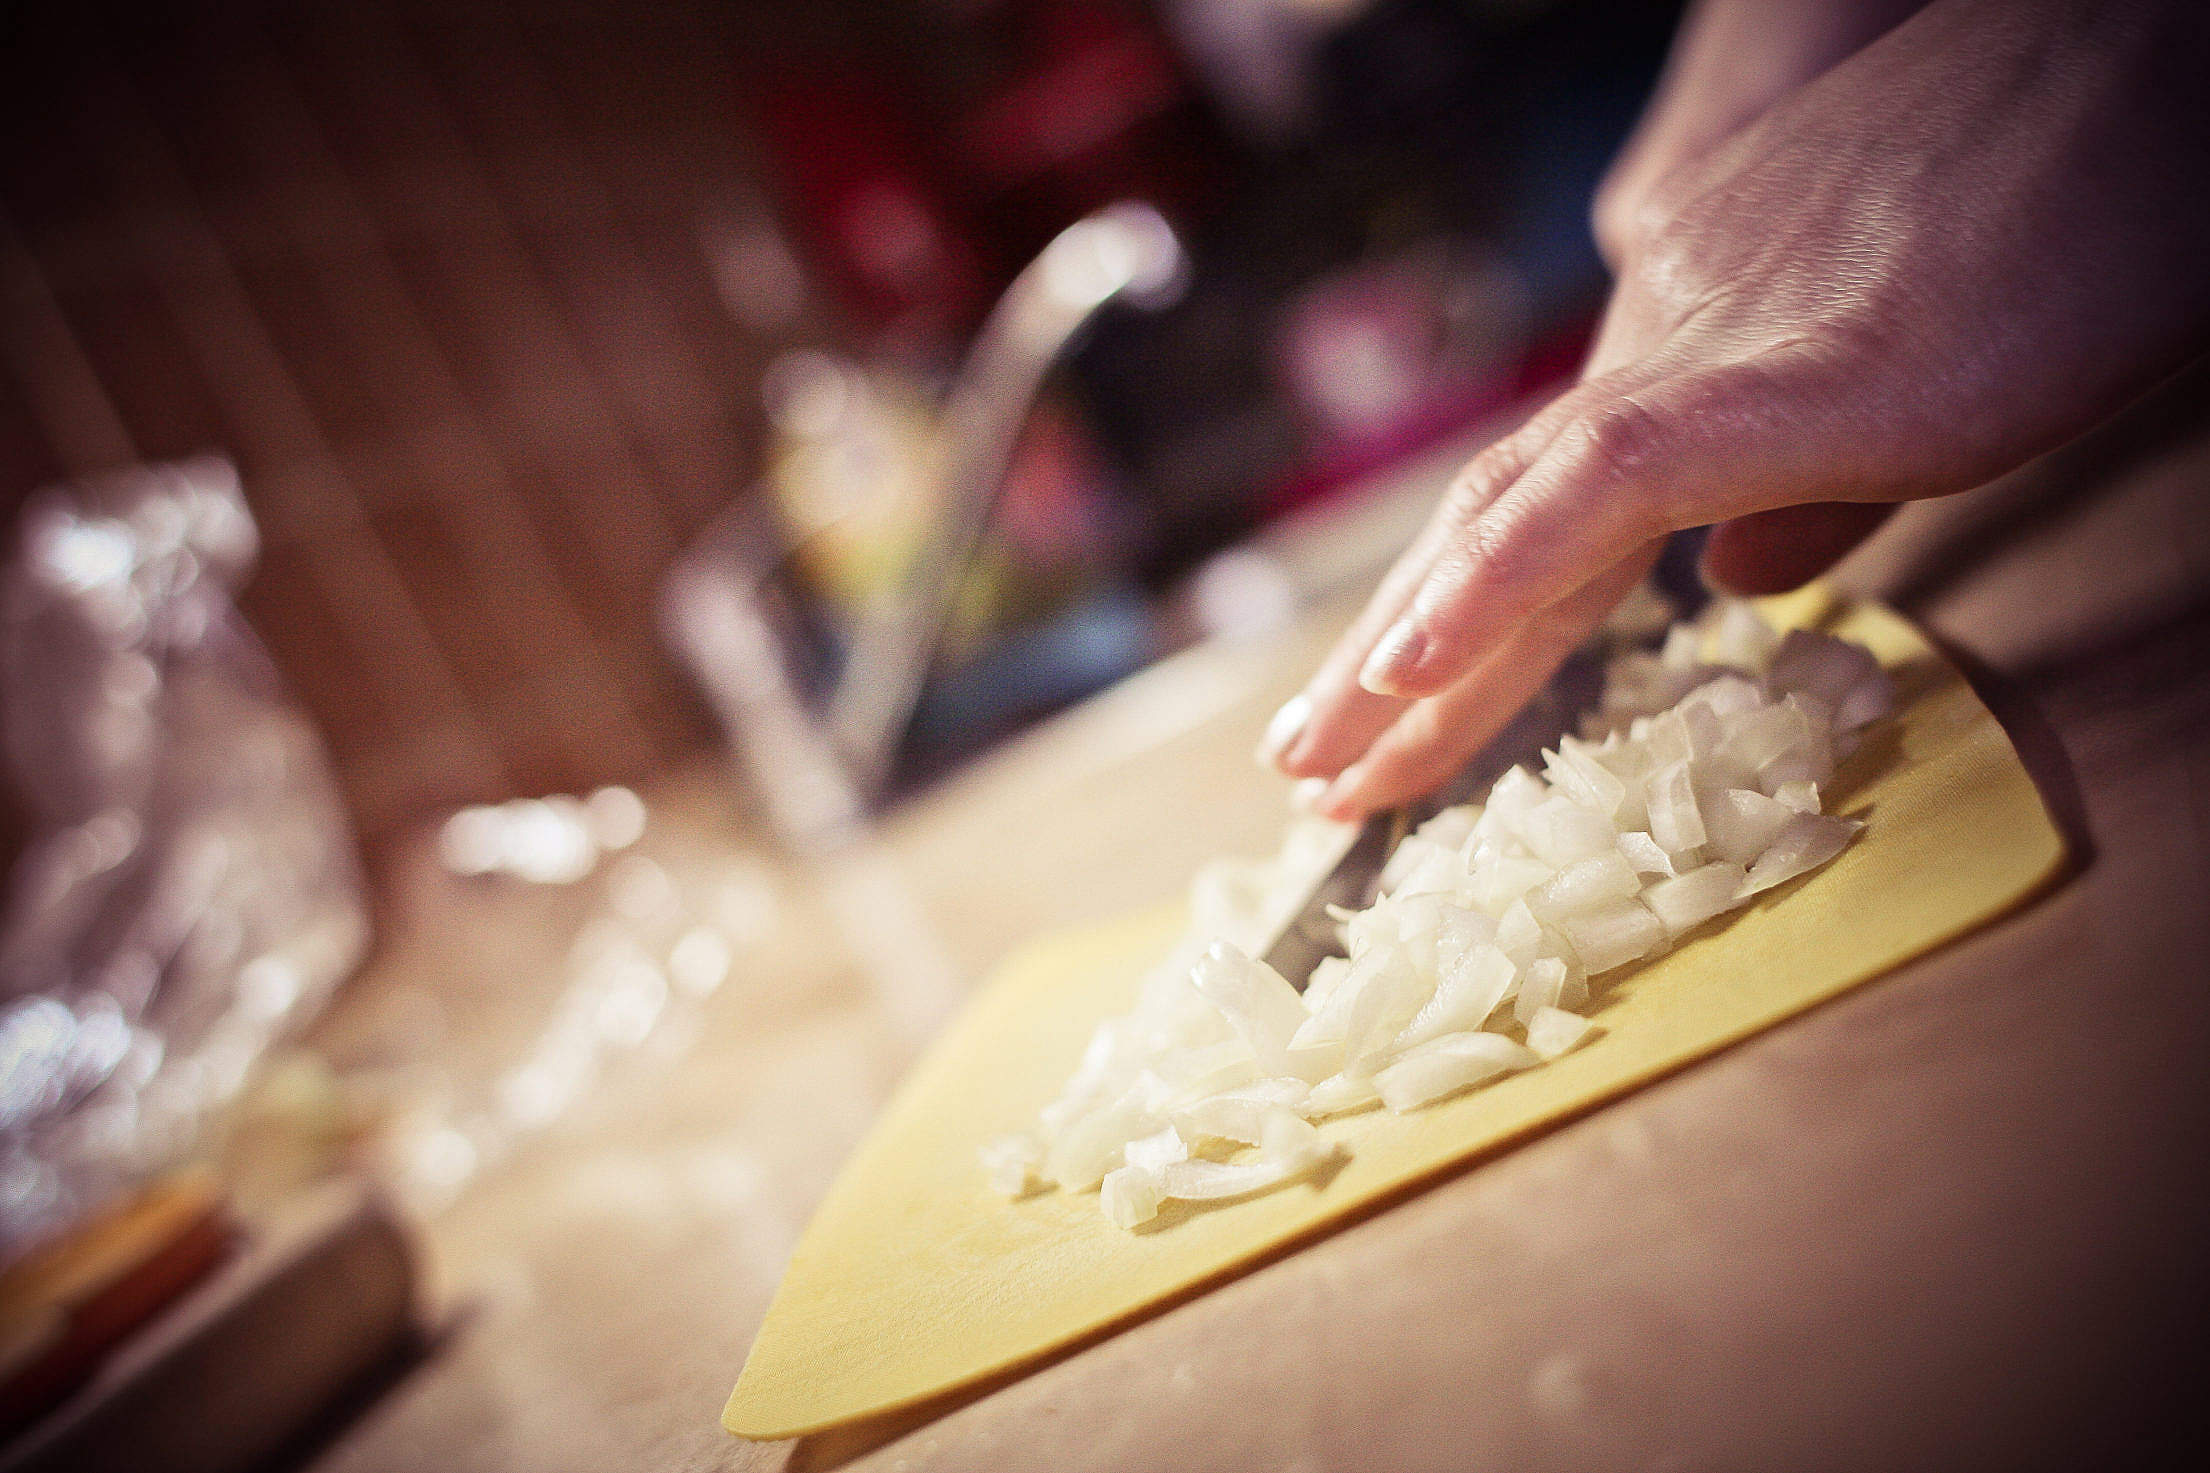 Slicing Onions in the Kitchen Free Stock Photo